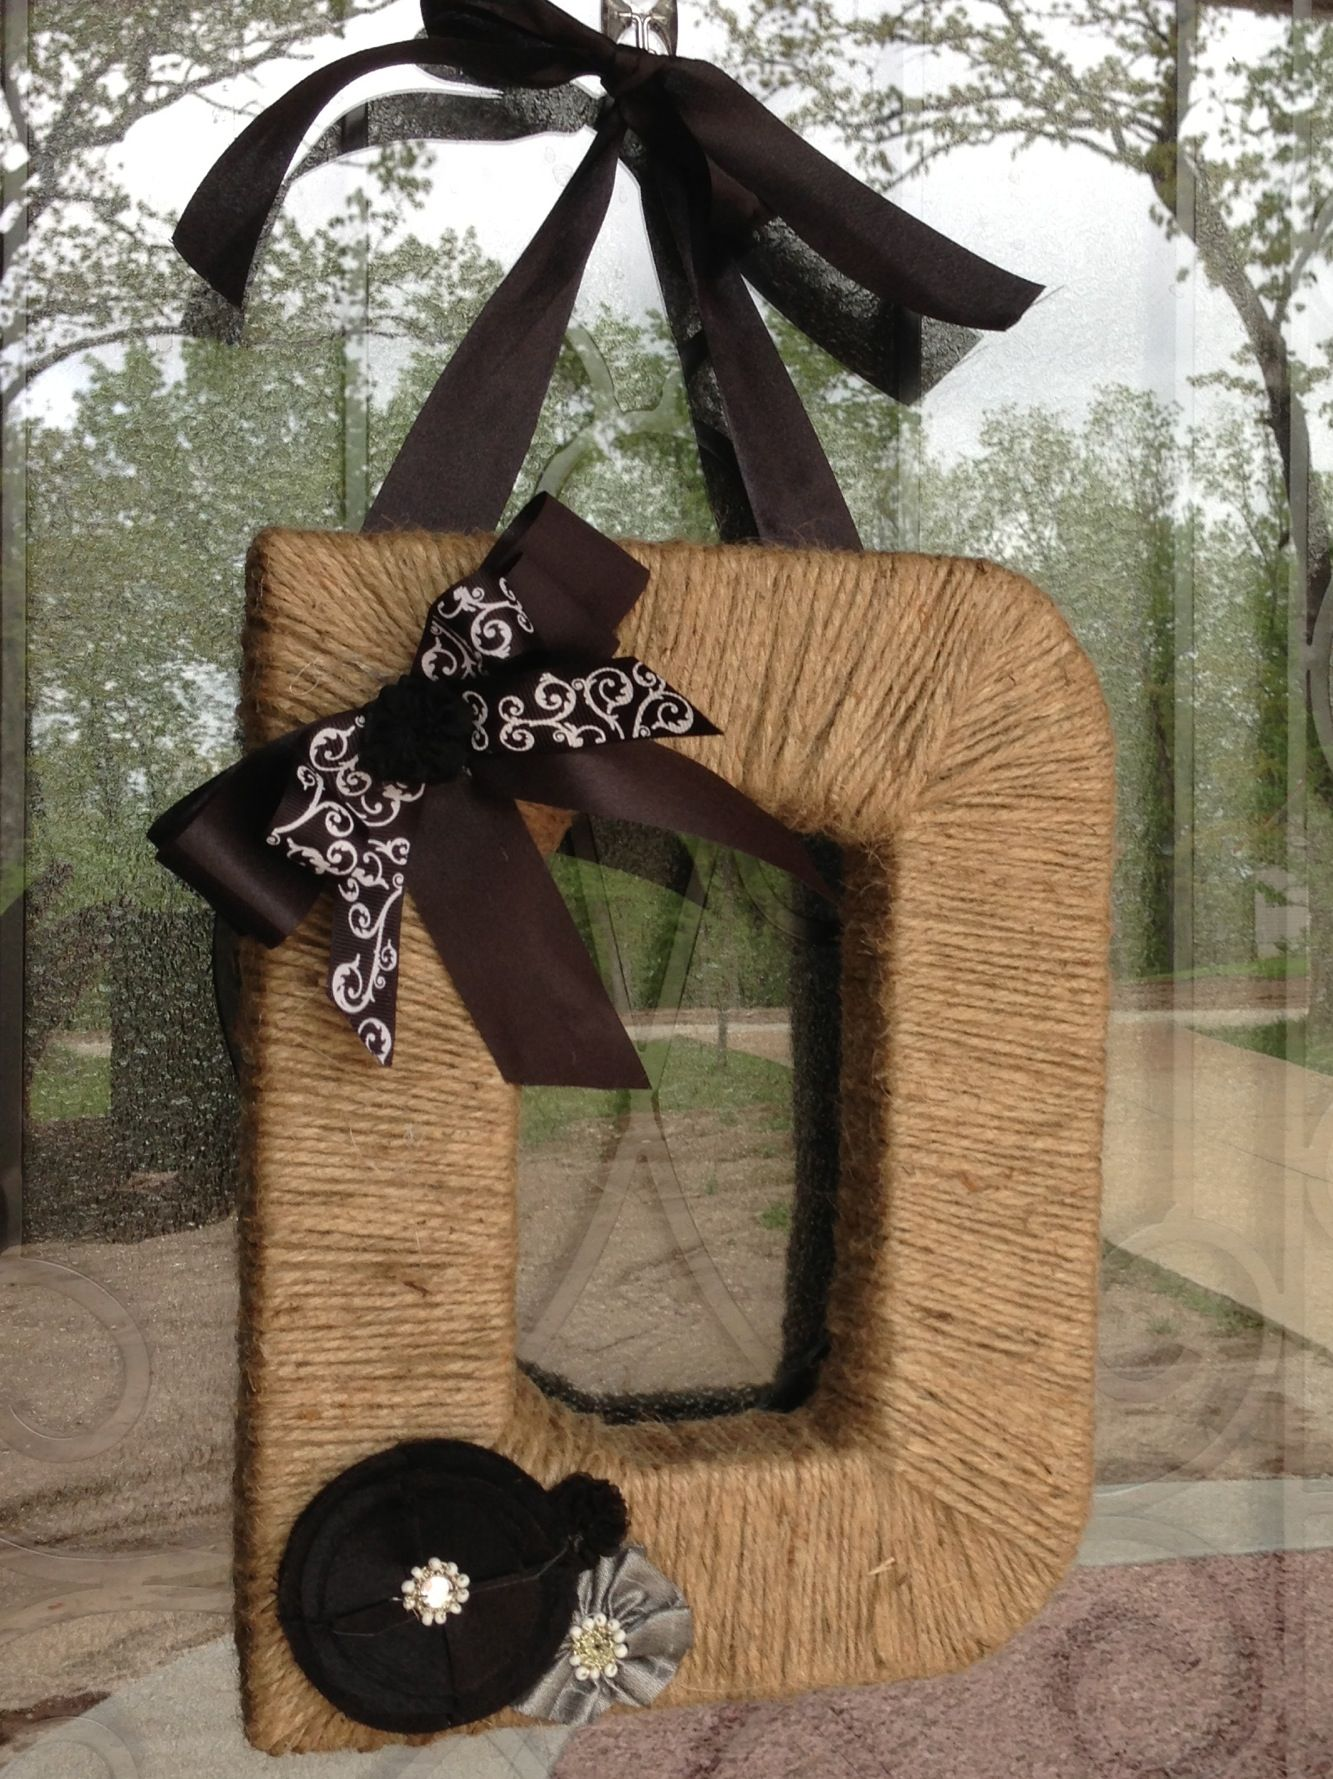 Cardboard letter bought at hobby lobby and wrapped in twine!